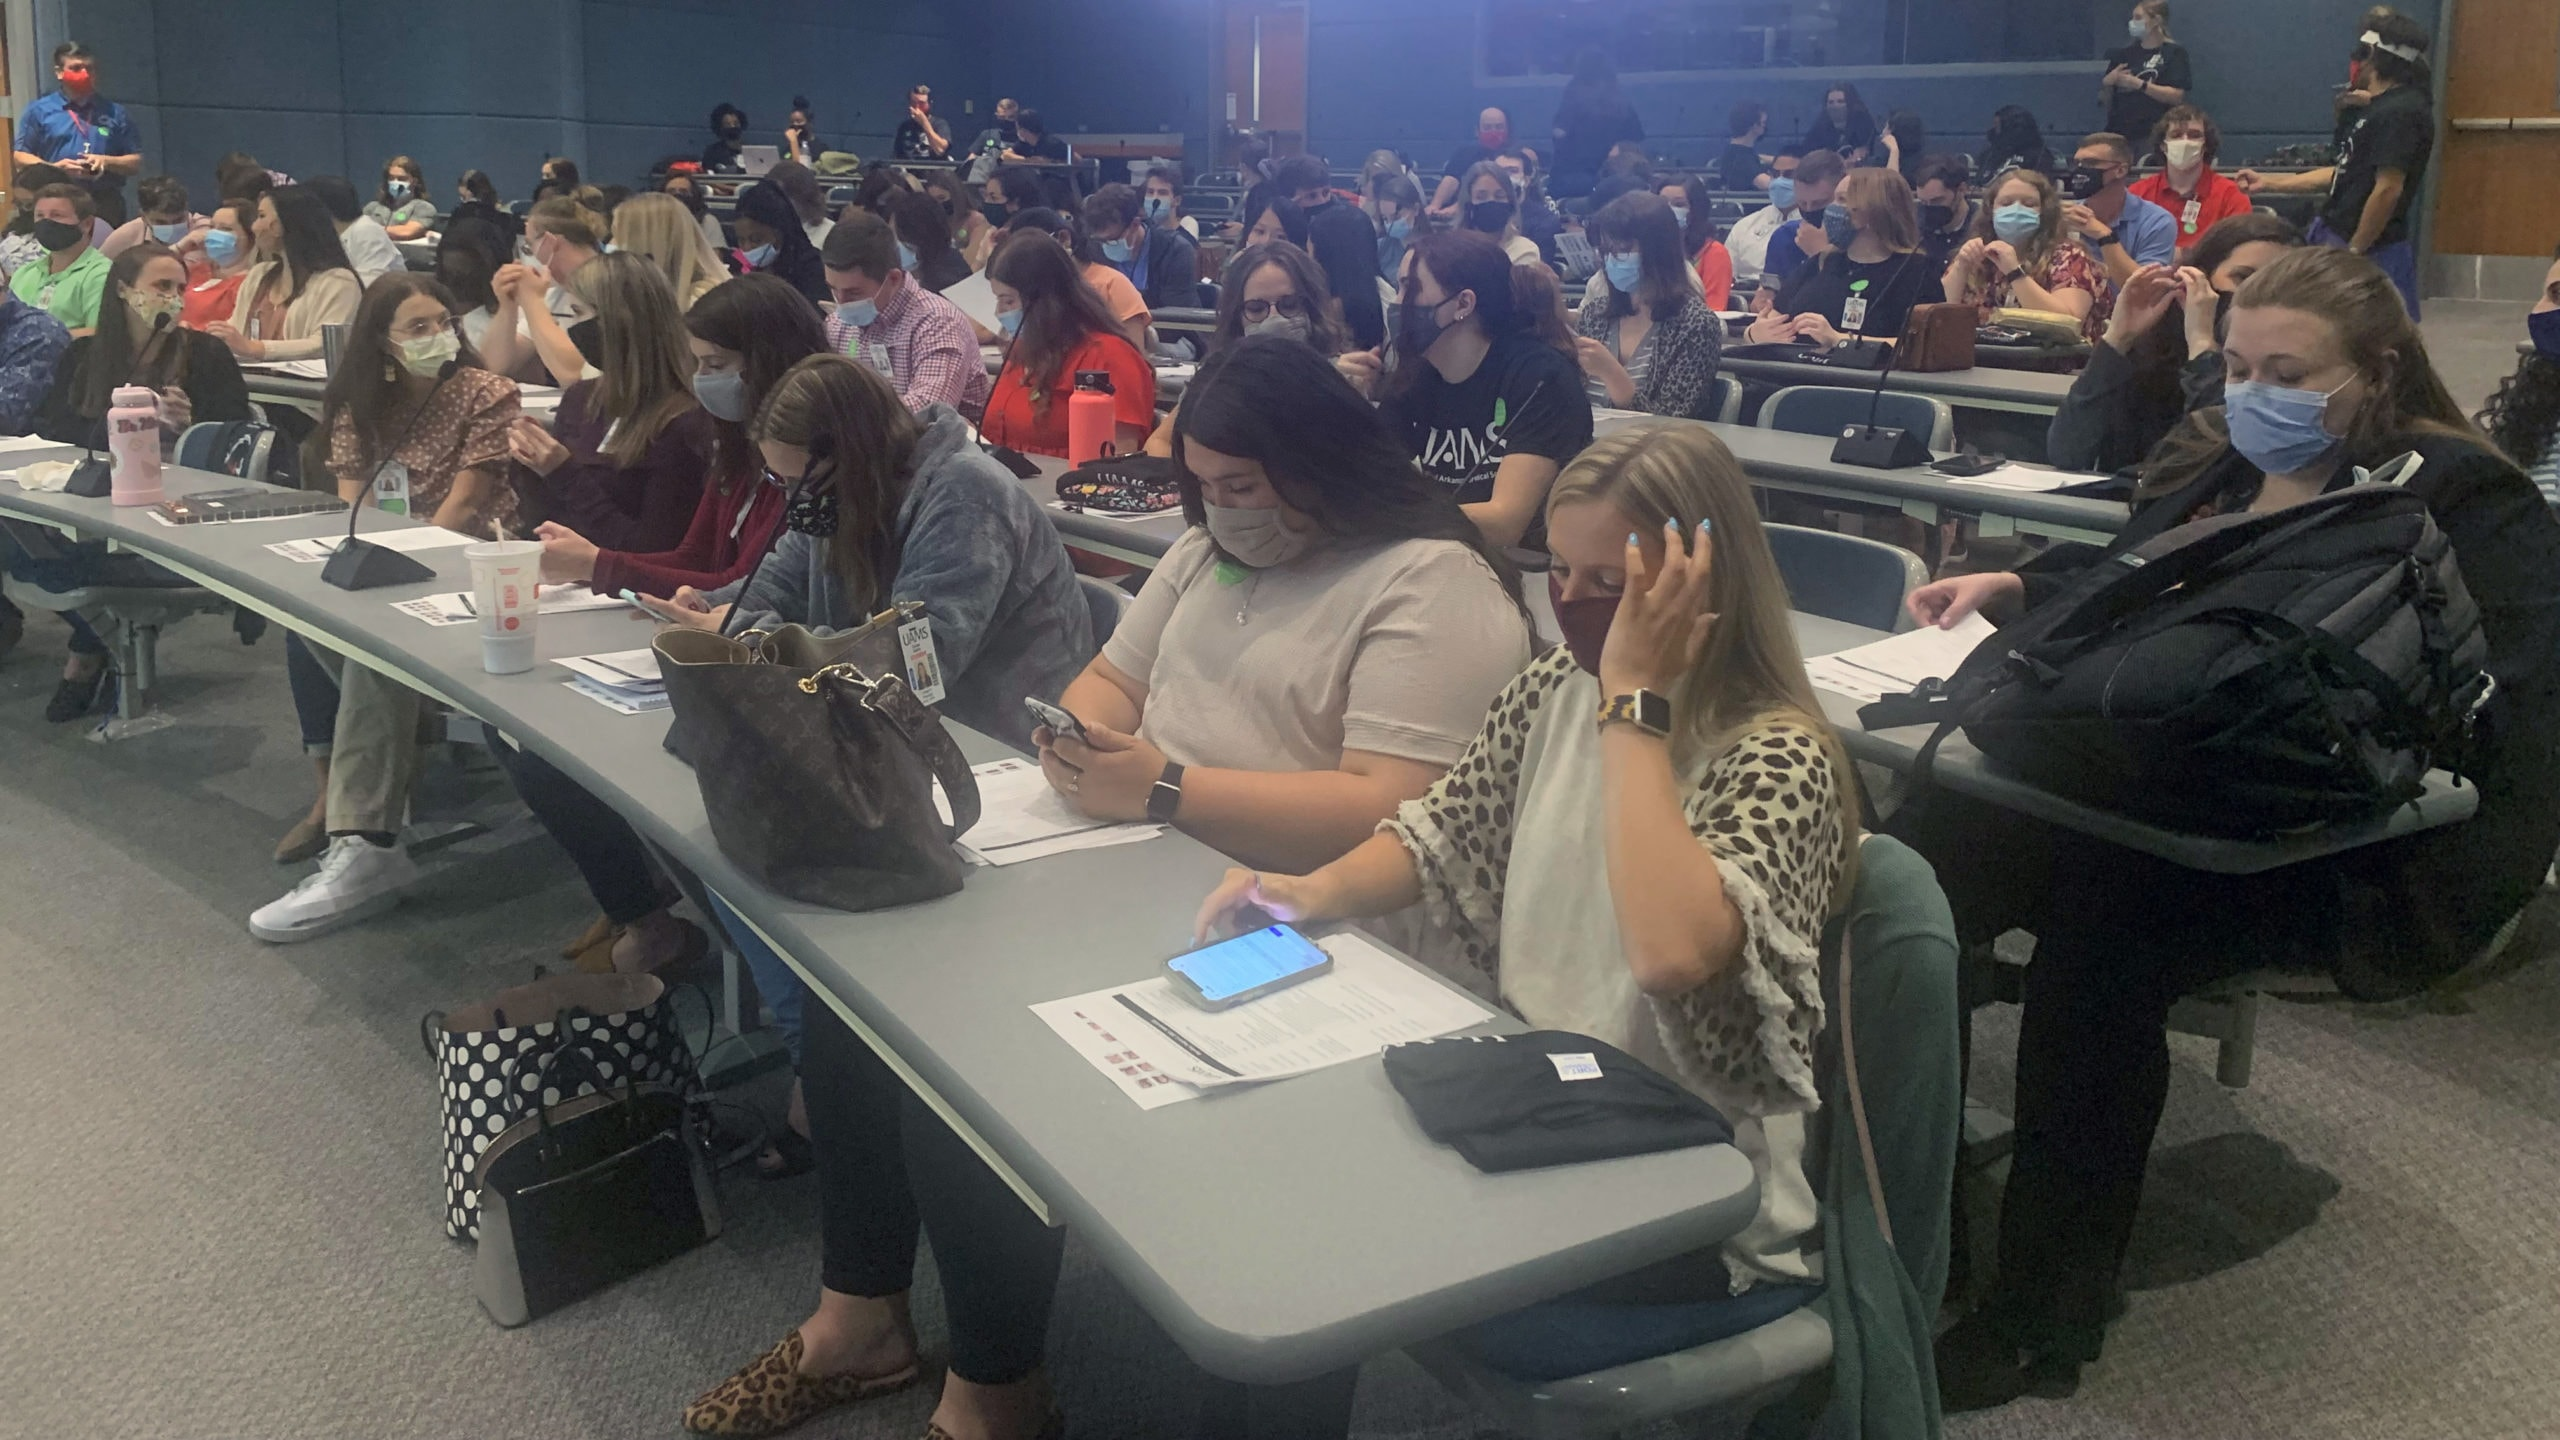 First-year students in the College of Pharmacy wait to begin their first day of orientation on Aug. 2, 2021.